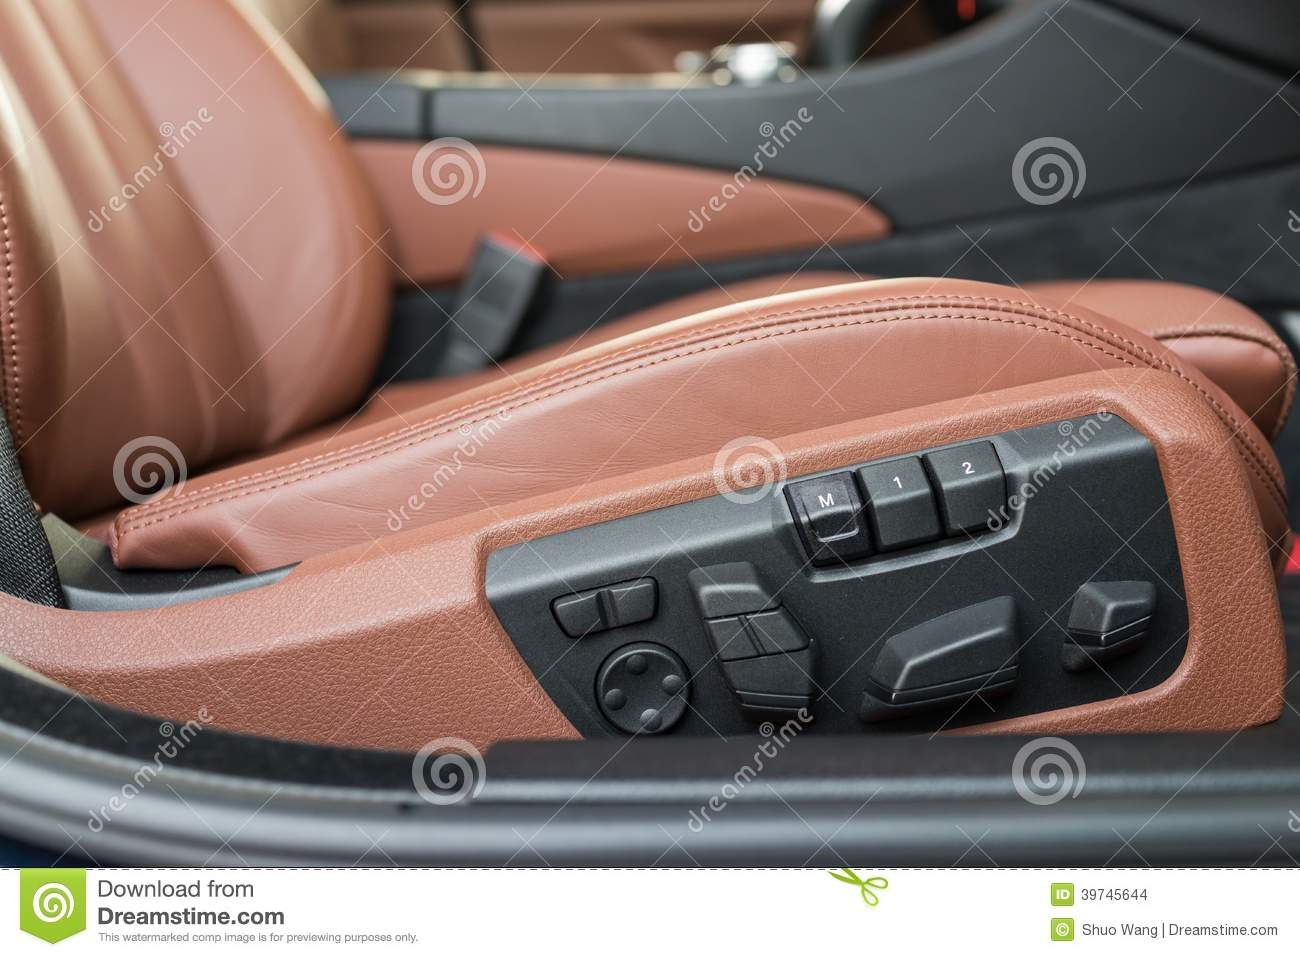 Electric Seat Adjustment Stock Photo Image Of Button 39745644